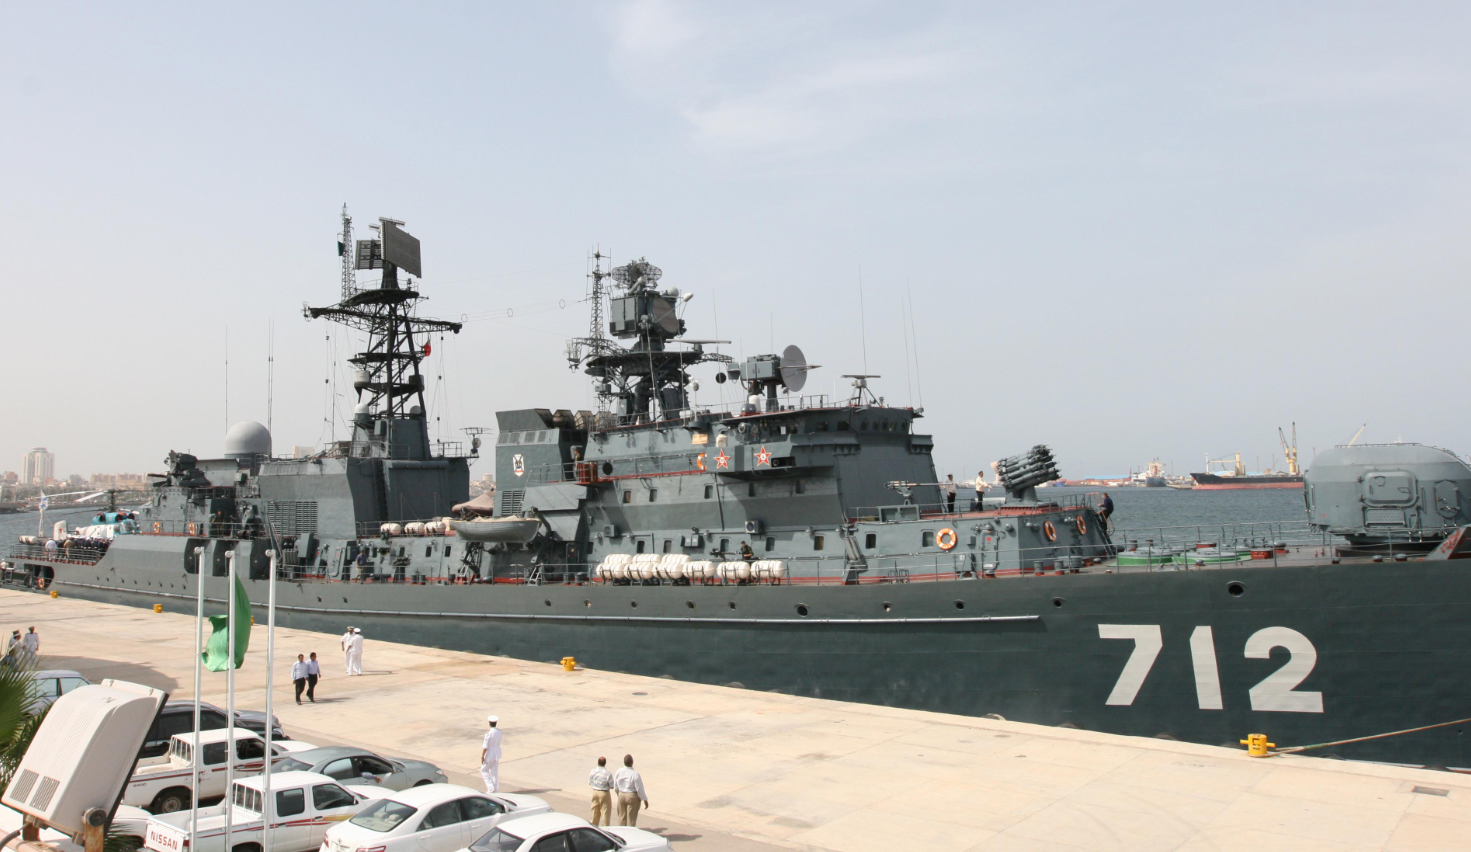 A warship from Russia's Northern Fleet docked in the Libyan port of Tripoli in 2008. (Mahmud Turkia/AFP/Getty Images)